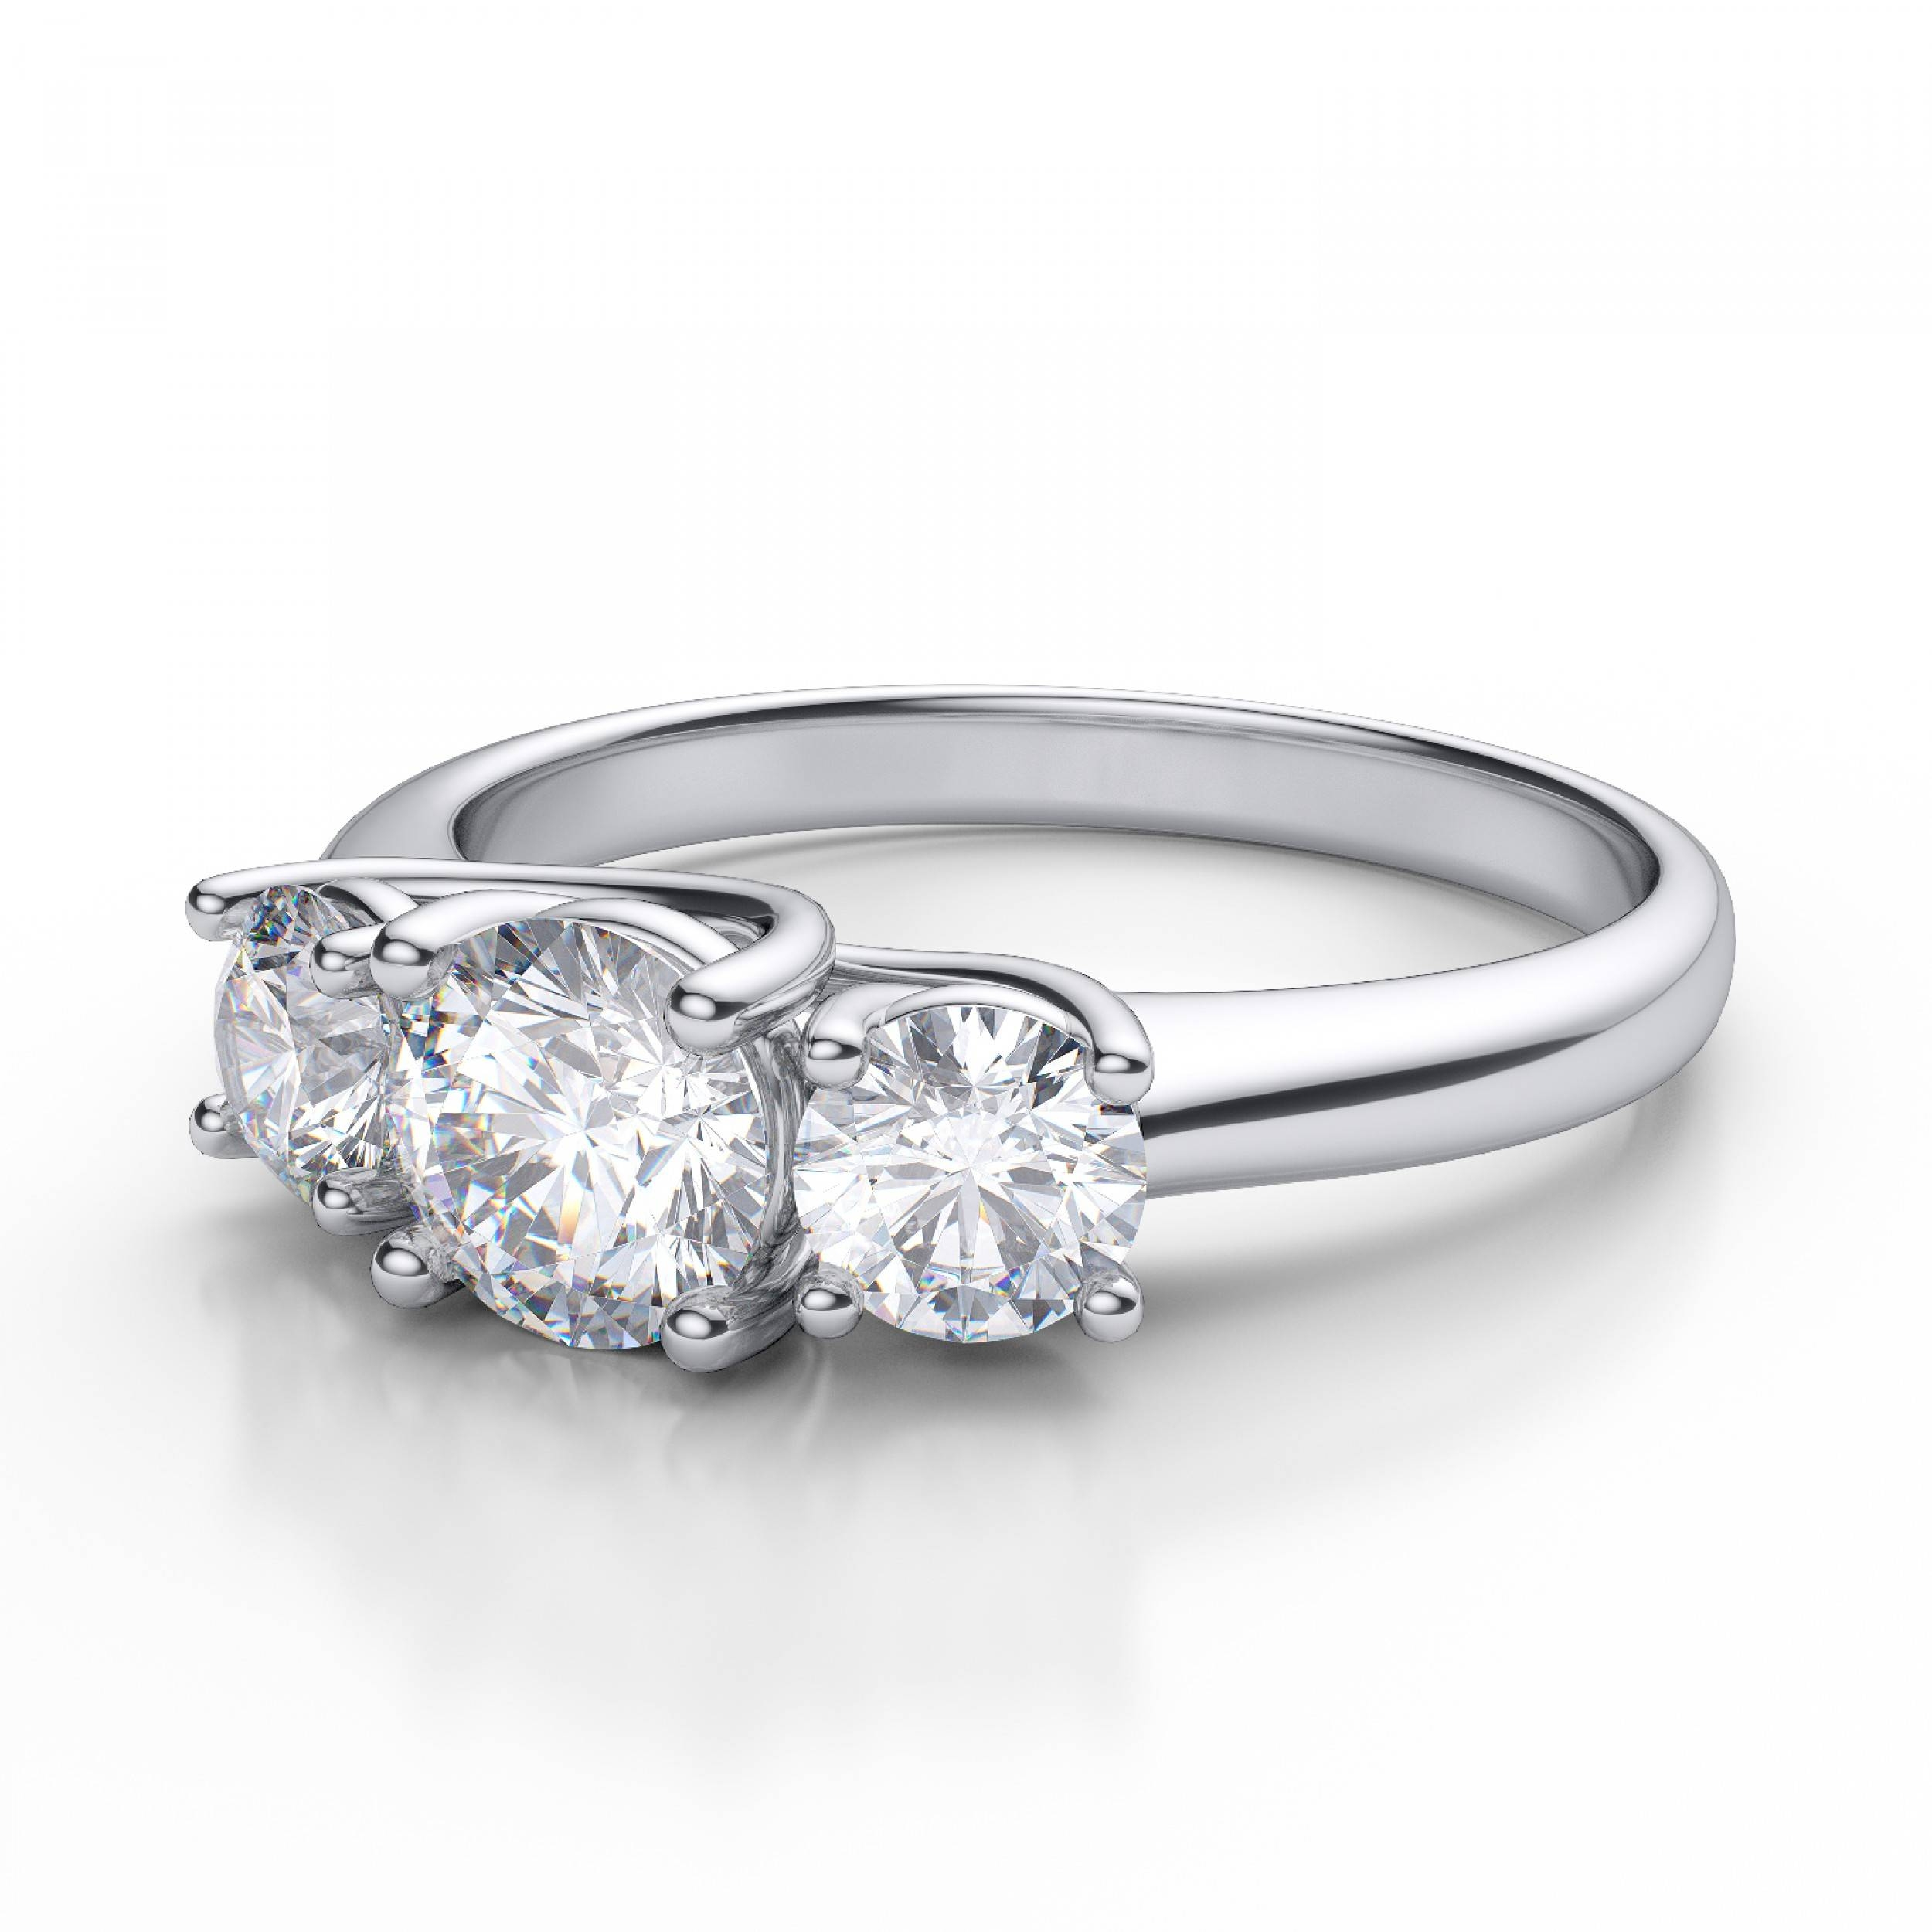 blog anniversary of diamonds daniel solid oval platinum featuring prince diamond ring london made bench stone bespoke rings hand in from jewellery by entirely